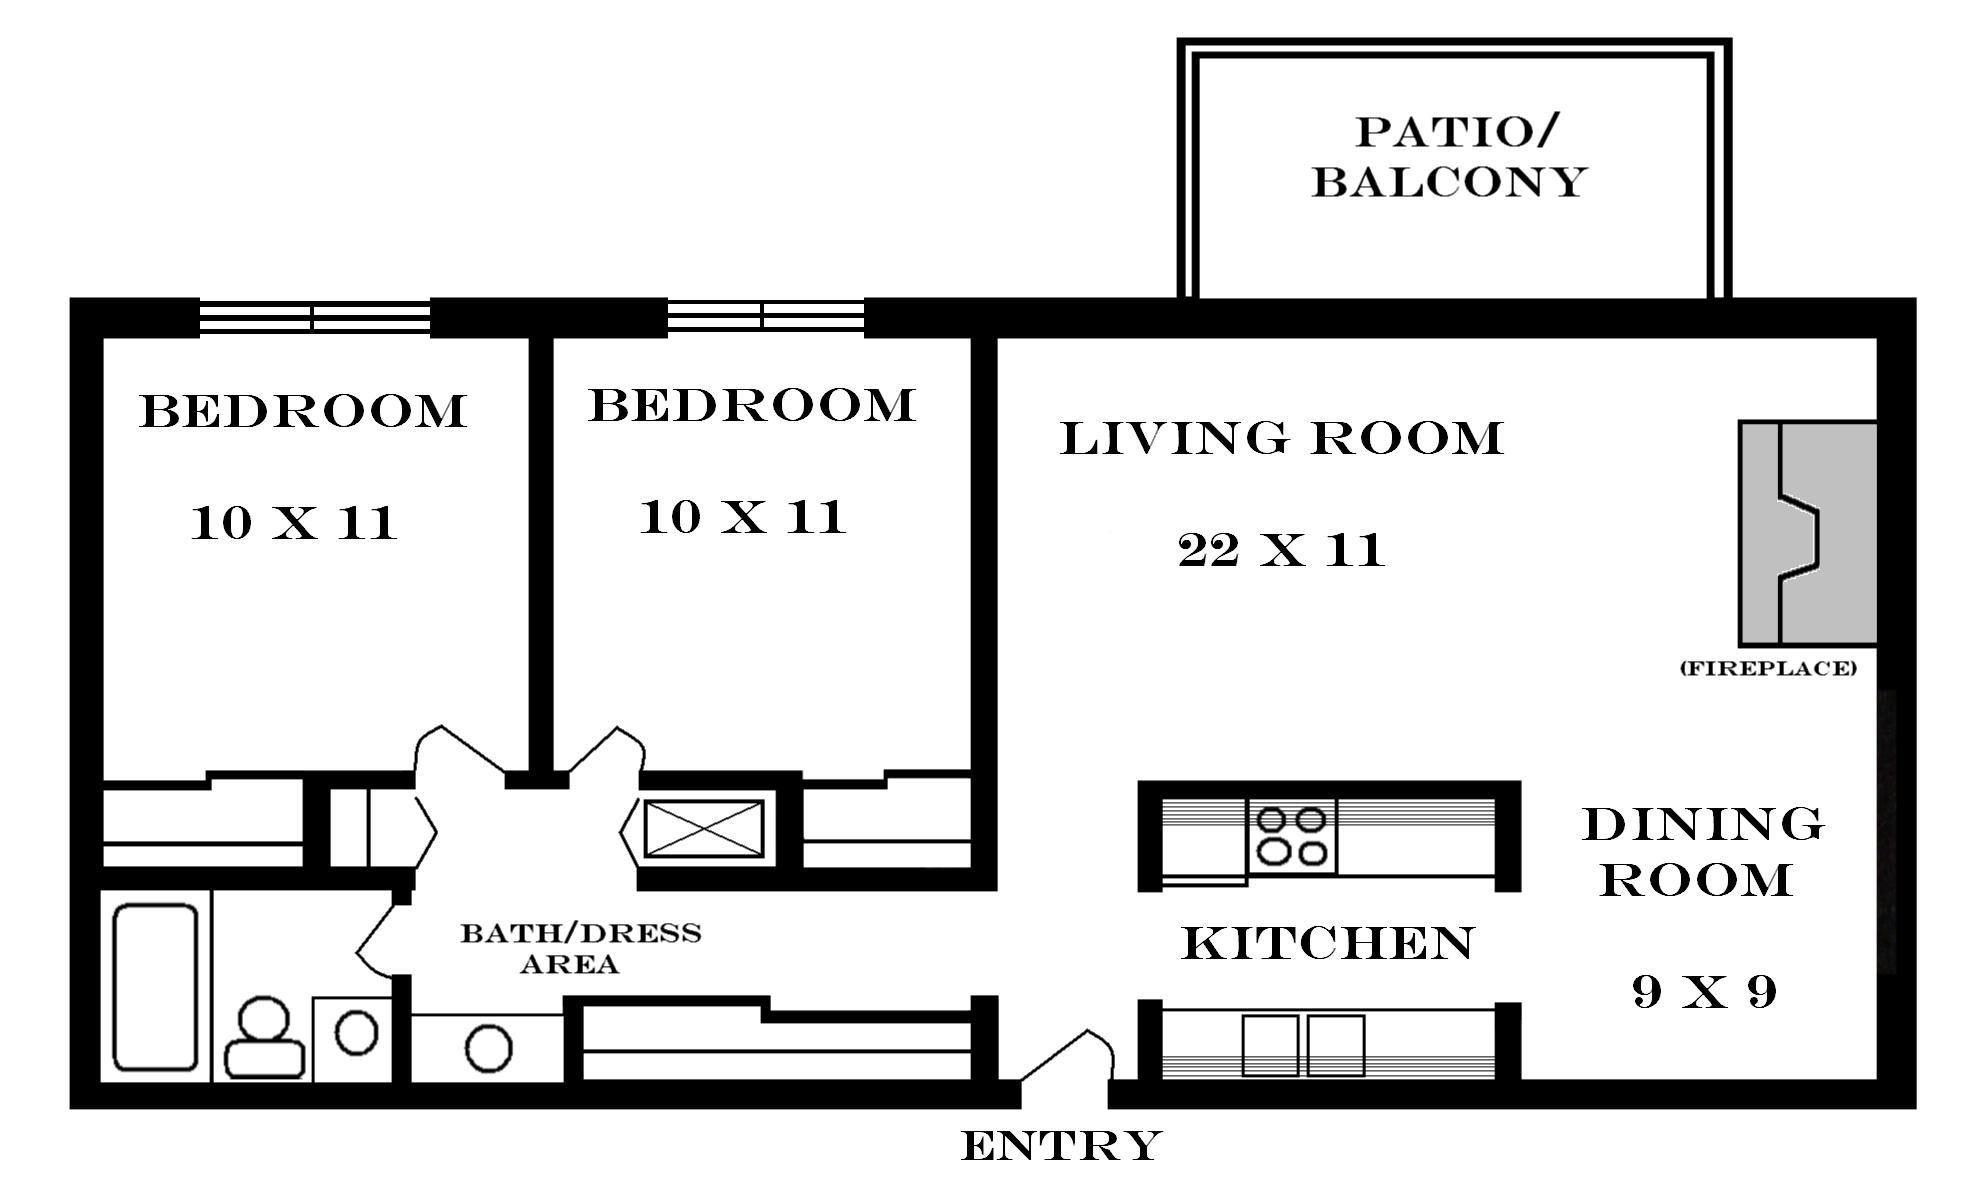 Apartment Floor Plans Bedroom Home Design Ideas